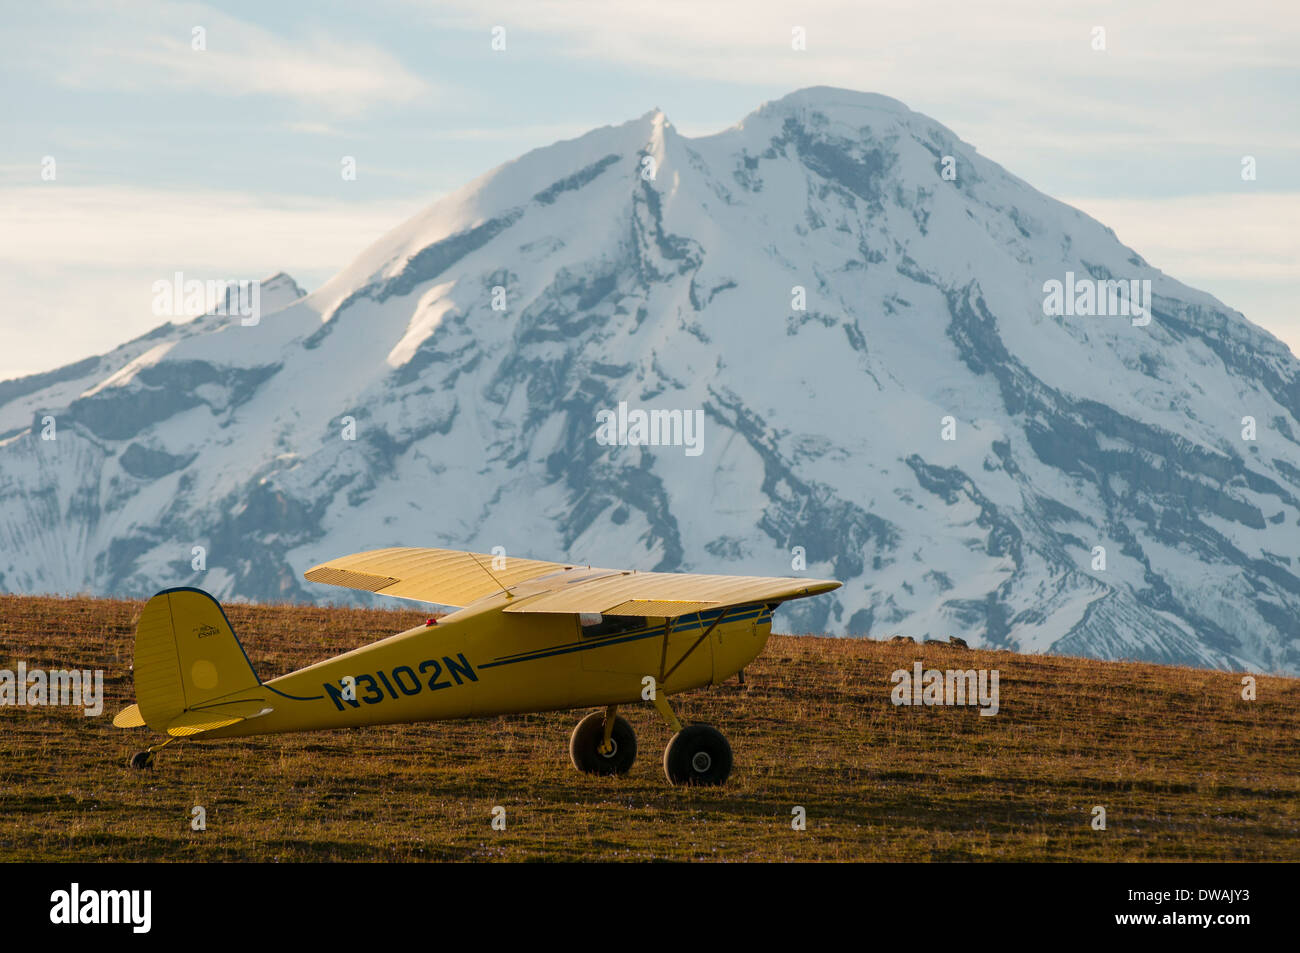 Yellow Cessna 120 single engine bush plane on the tundra in the mountains, in front of Mount Redoubt Volcano, Alaska - Stock Image